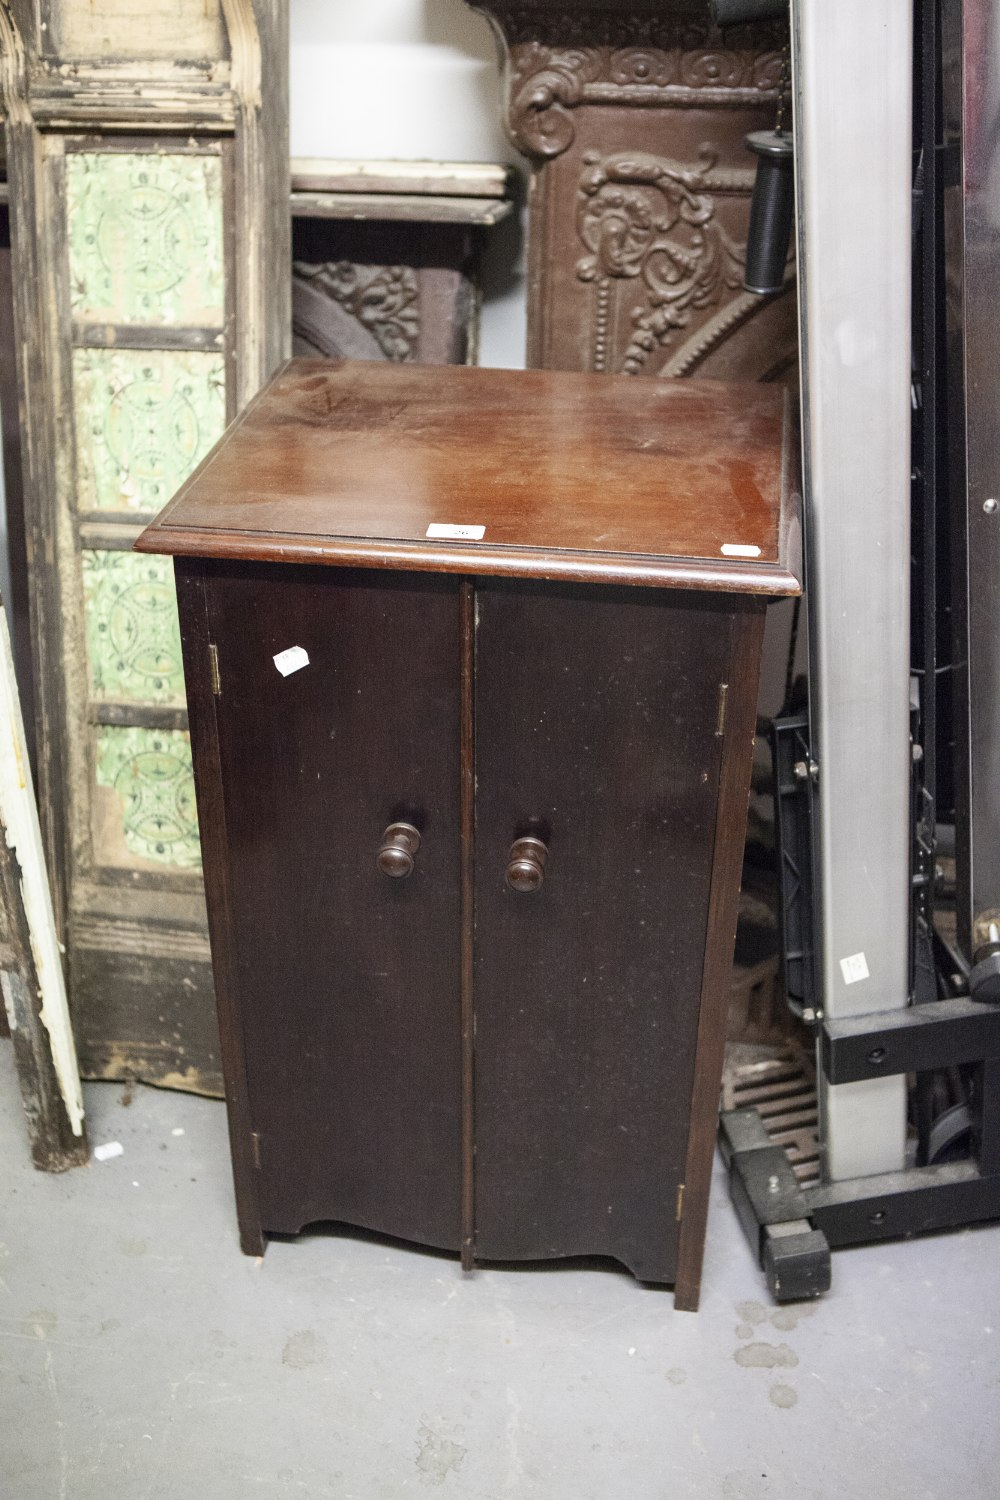 Lot 26 - A MAHOGANY TWO DOOR RECORD STORAGE CABINET AND A SELECTION OF 78 RPM RECORDS